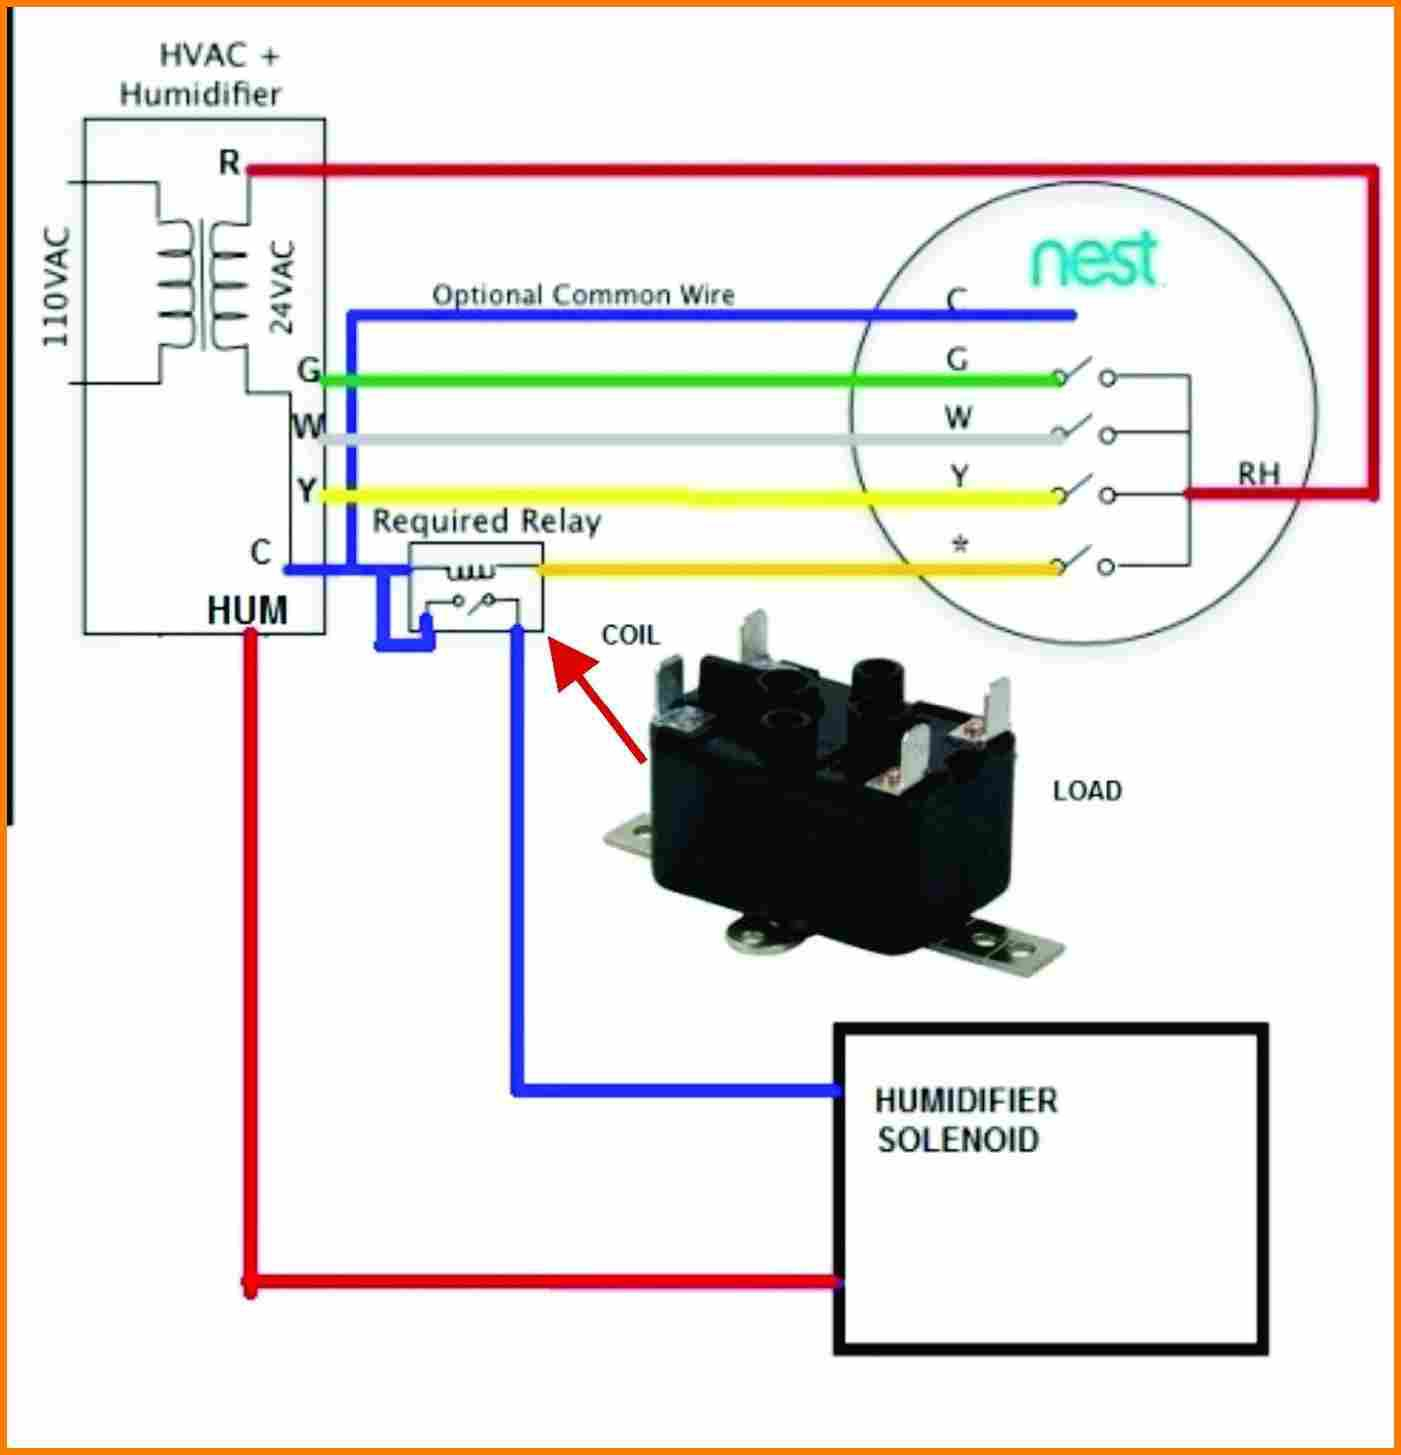 nest thermostat humidifier wiring diagram Collection-Nest Thermostat Wiring Diagram Beautiful Furnace Within 6-h